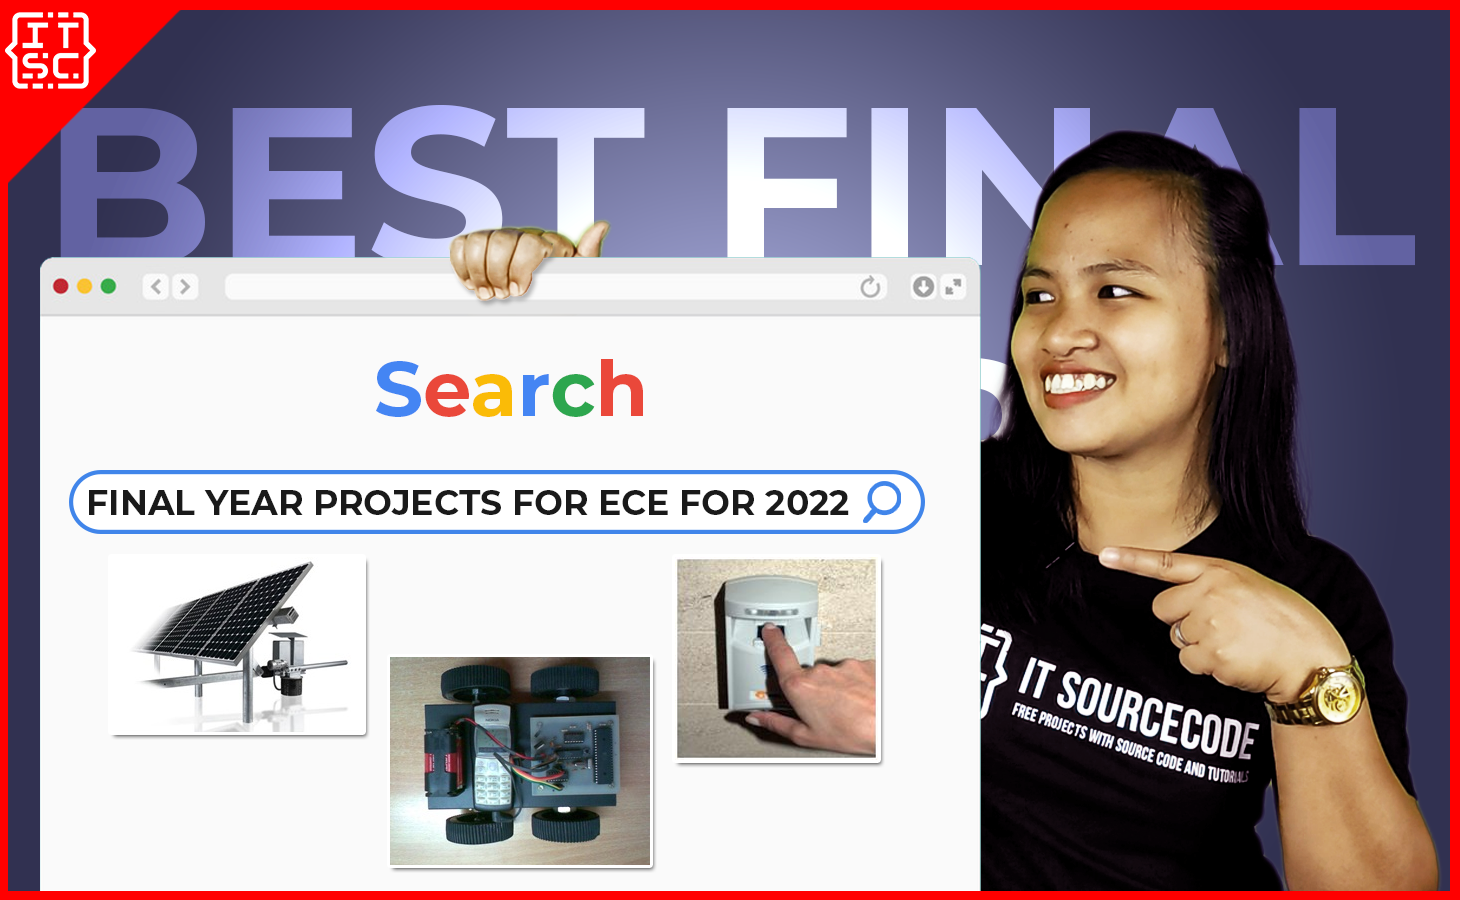 BEST FINAL YEAR PROJECTS FOR ECE FOR 2022